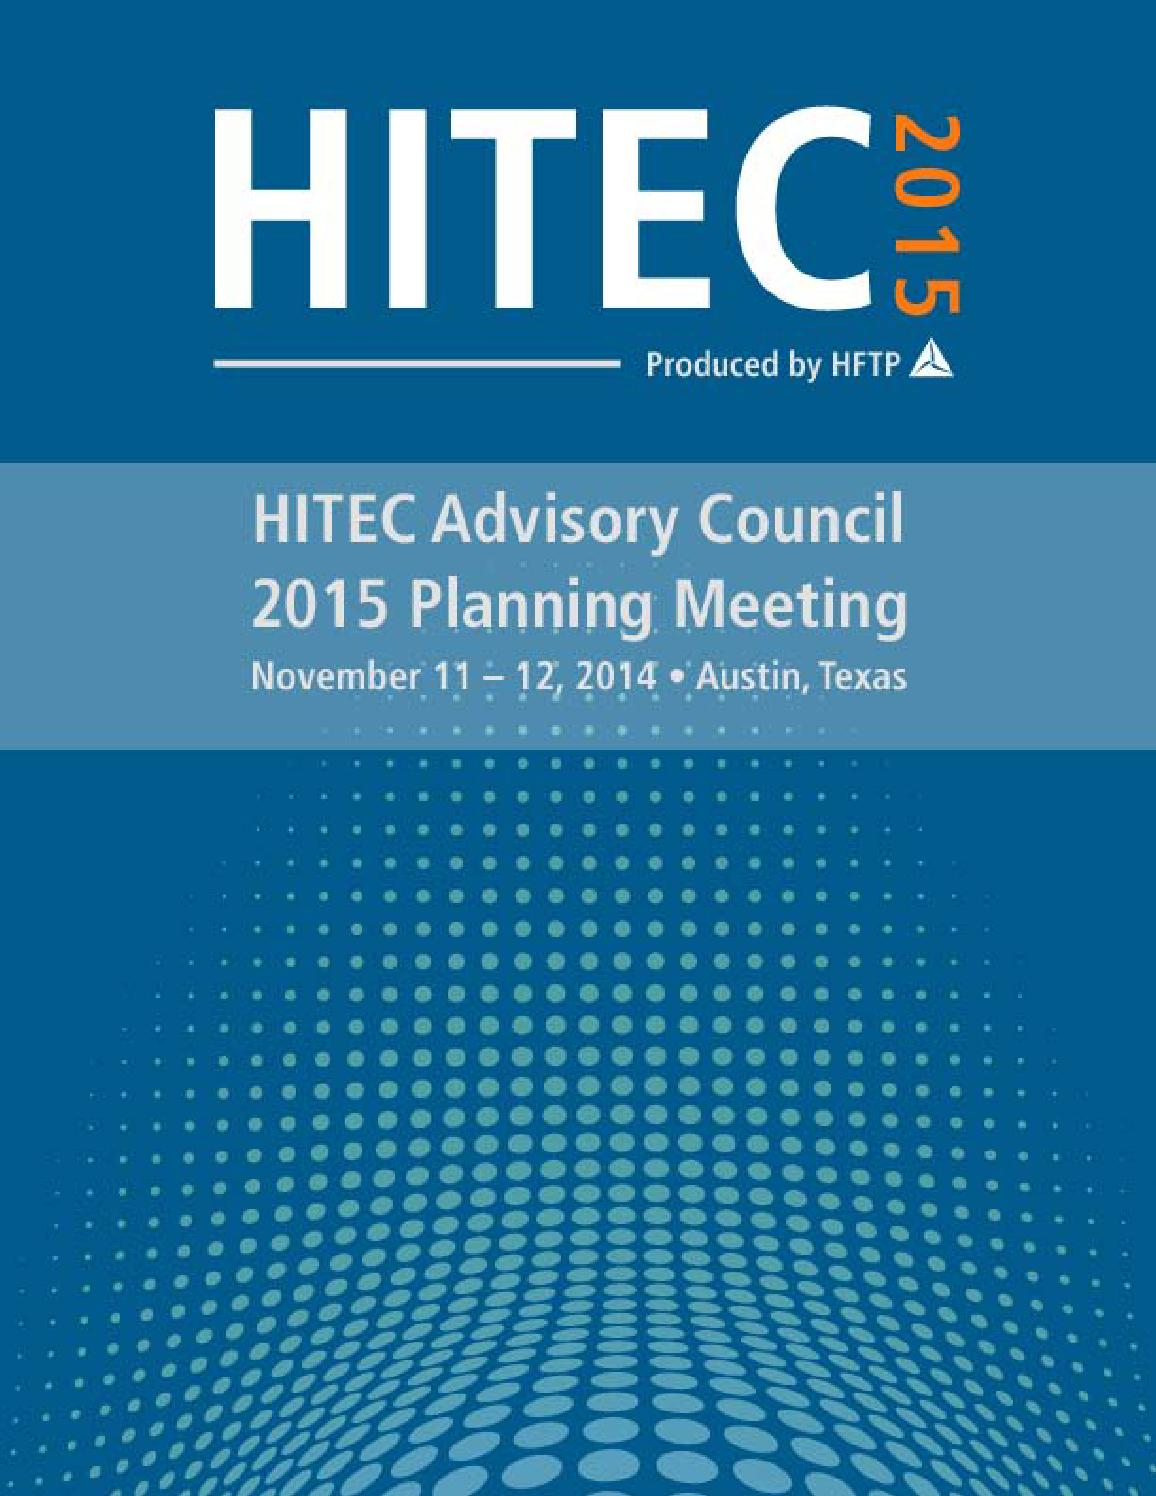 HITEC 2015 Advisory Council Planning Packet by HFTP - issuu